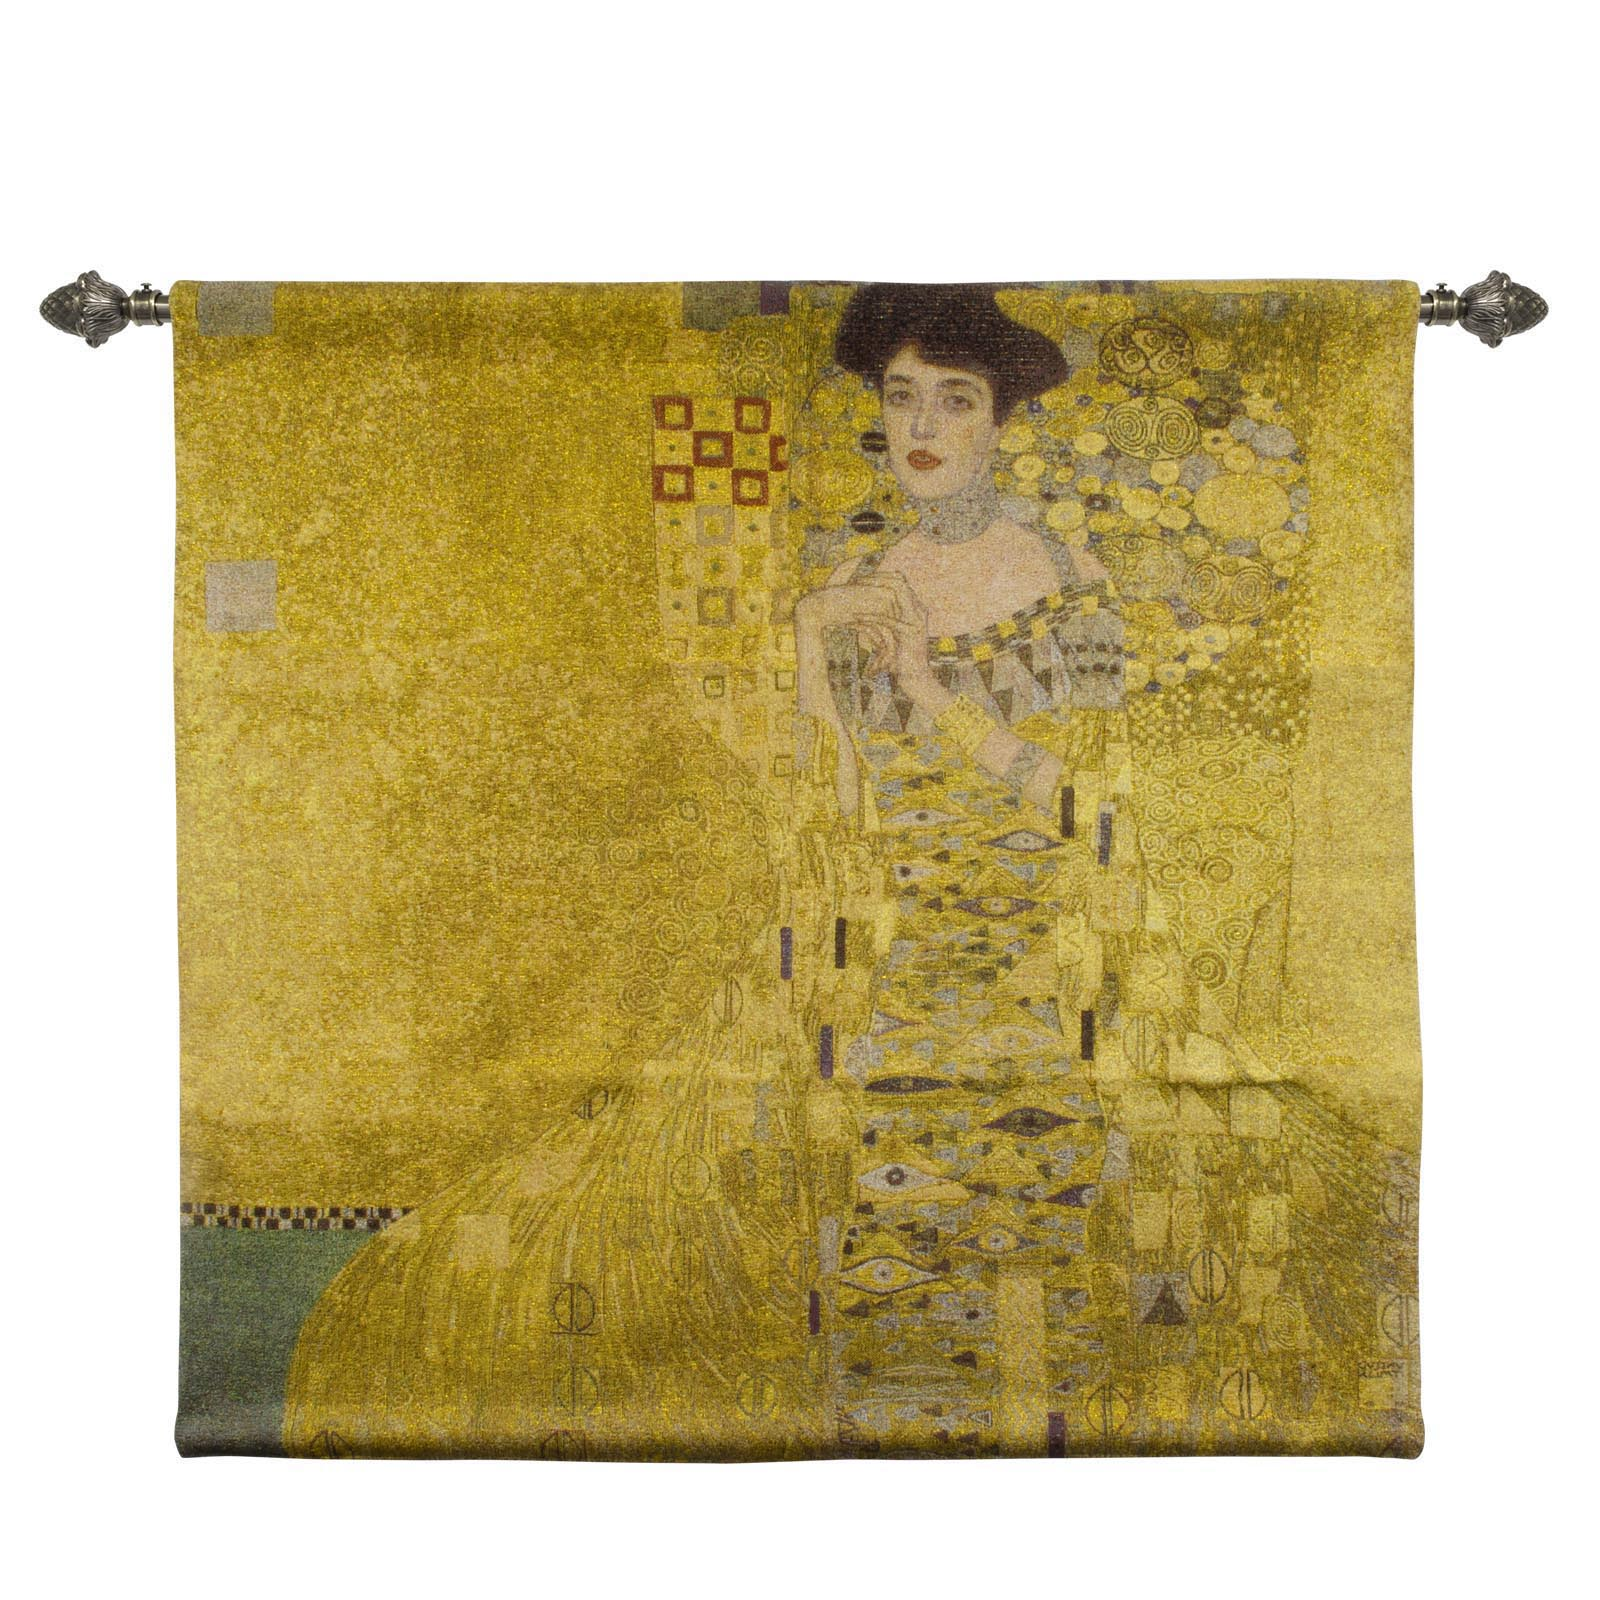 Wall Hanging-Klimt Woman in Gold | Home Decor, Wall Art Approx 100 x 100cm | WH-GK-WGD